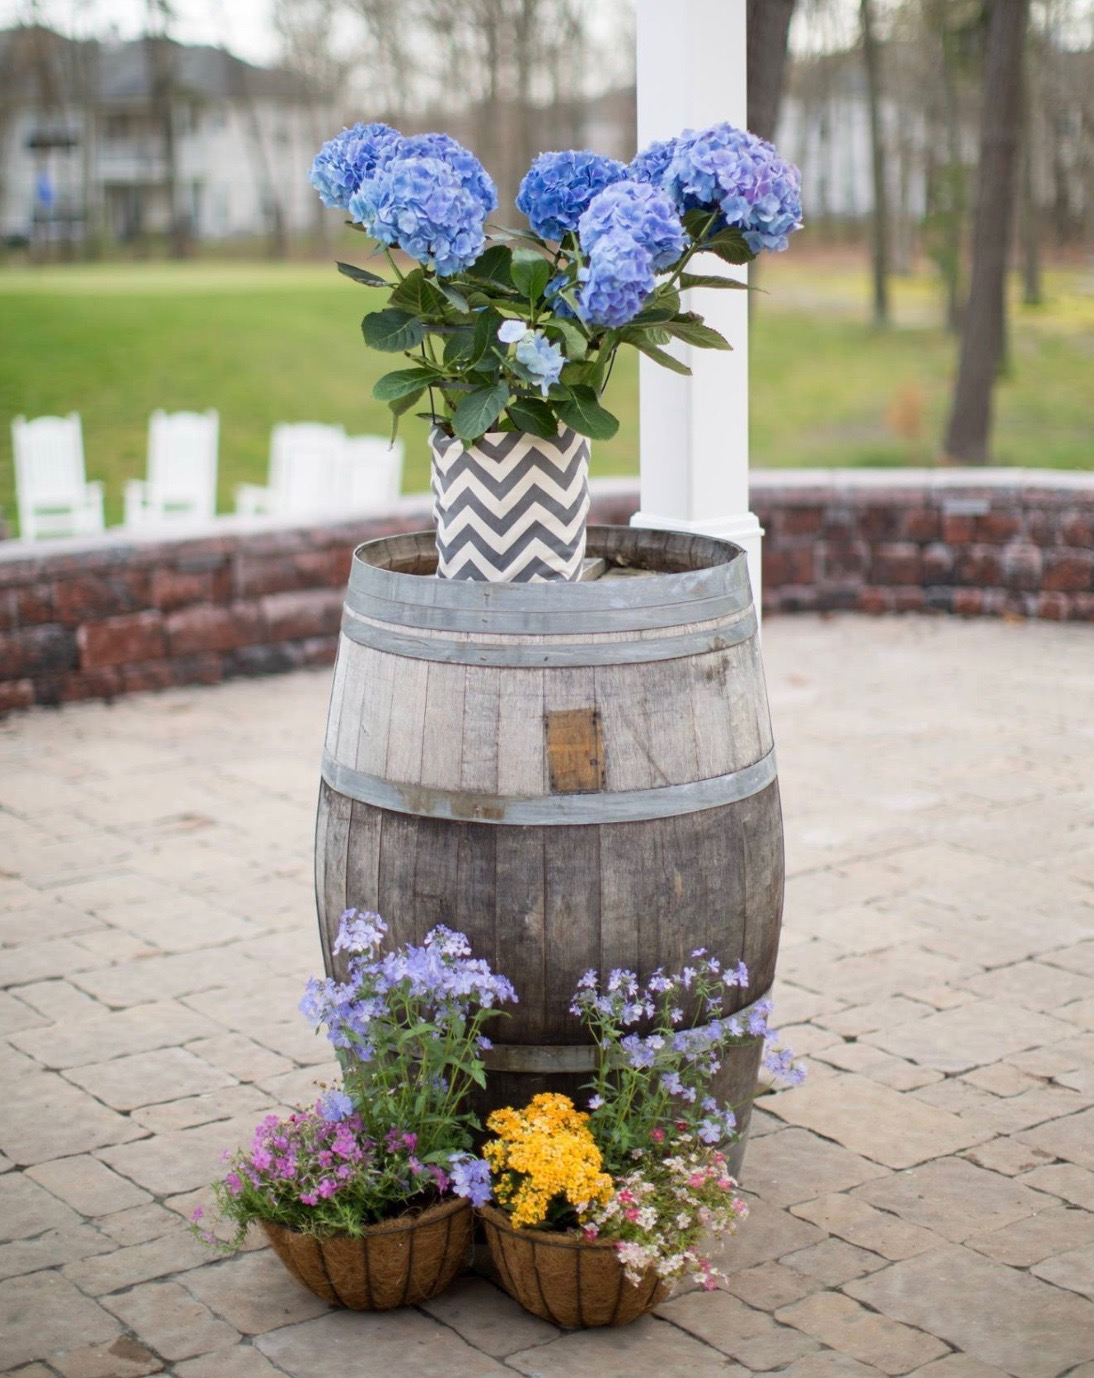 "Wine Barrels - Rental Rate: 45.00Dimensions: 35""H x 23.5"" DiameterQuantity Available: 2"